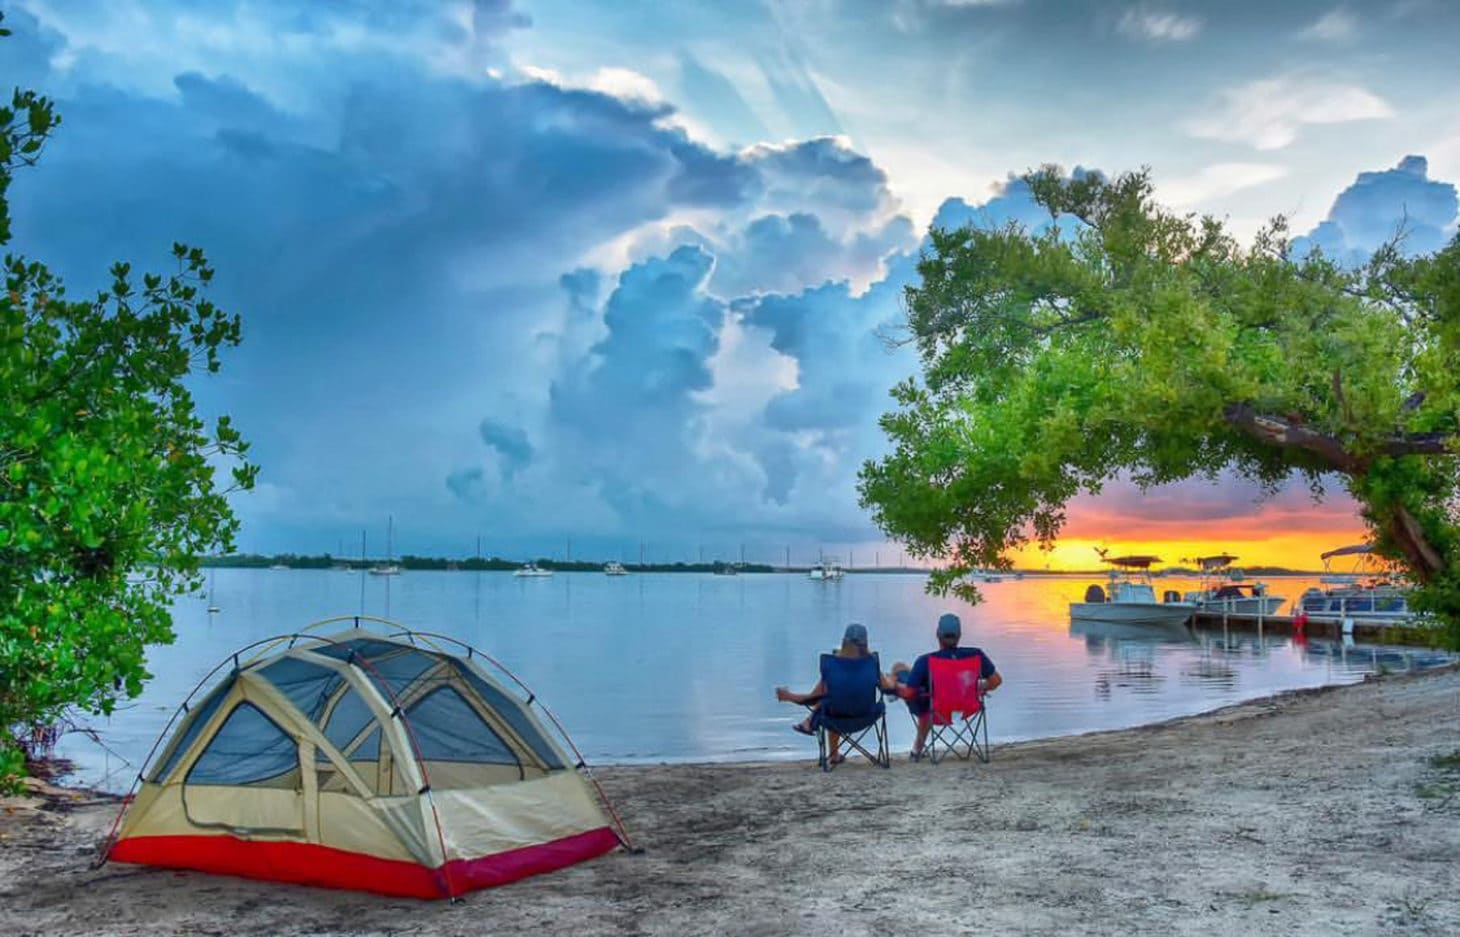 Couple sitting on beach chairs on shoreline with tent and boats parked at nearby dock